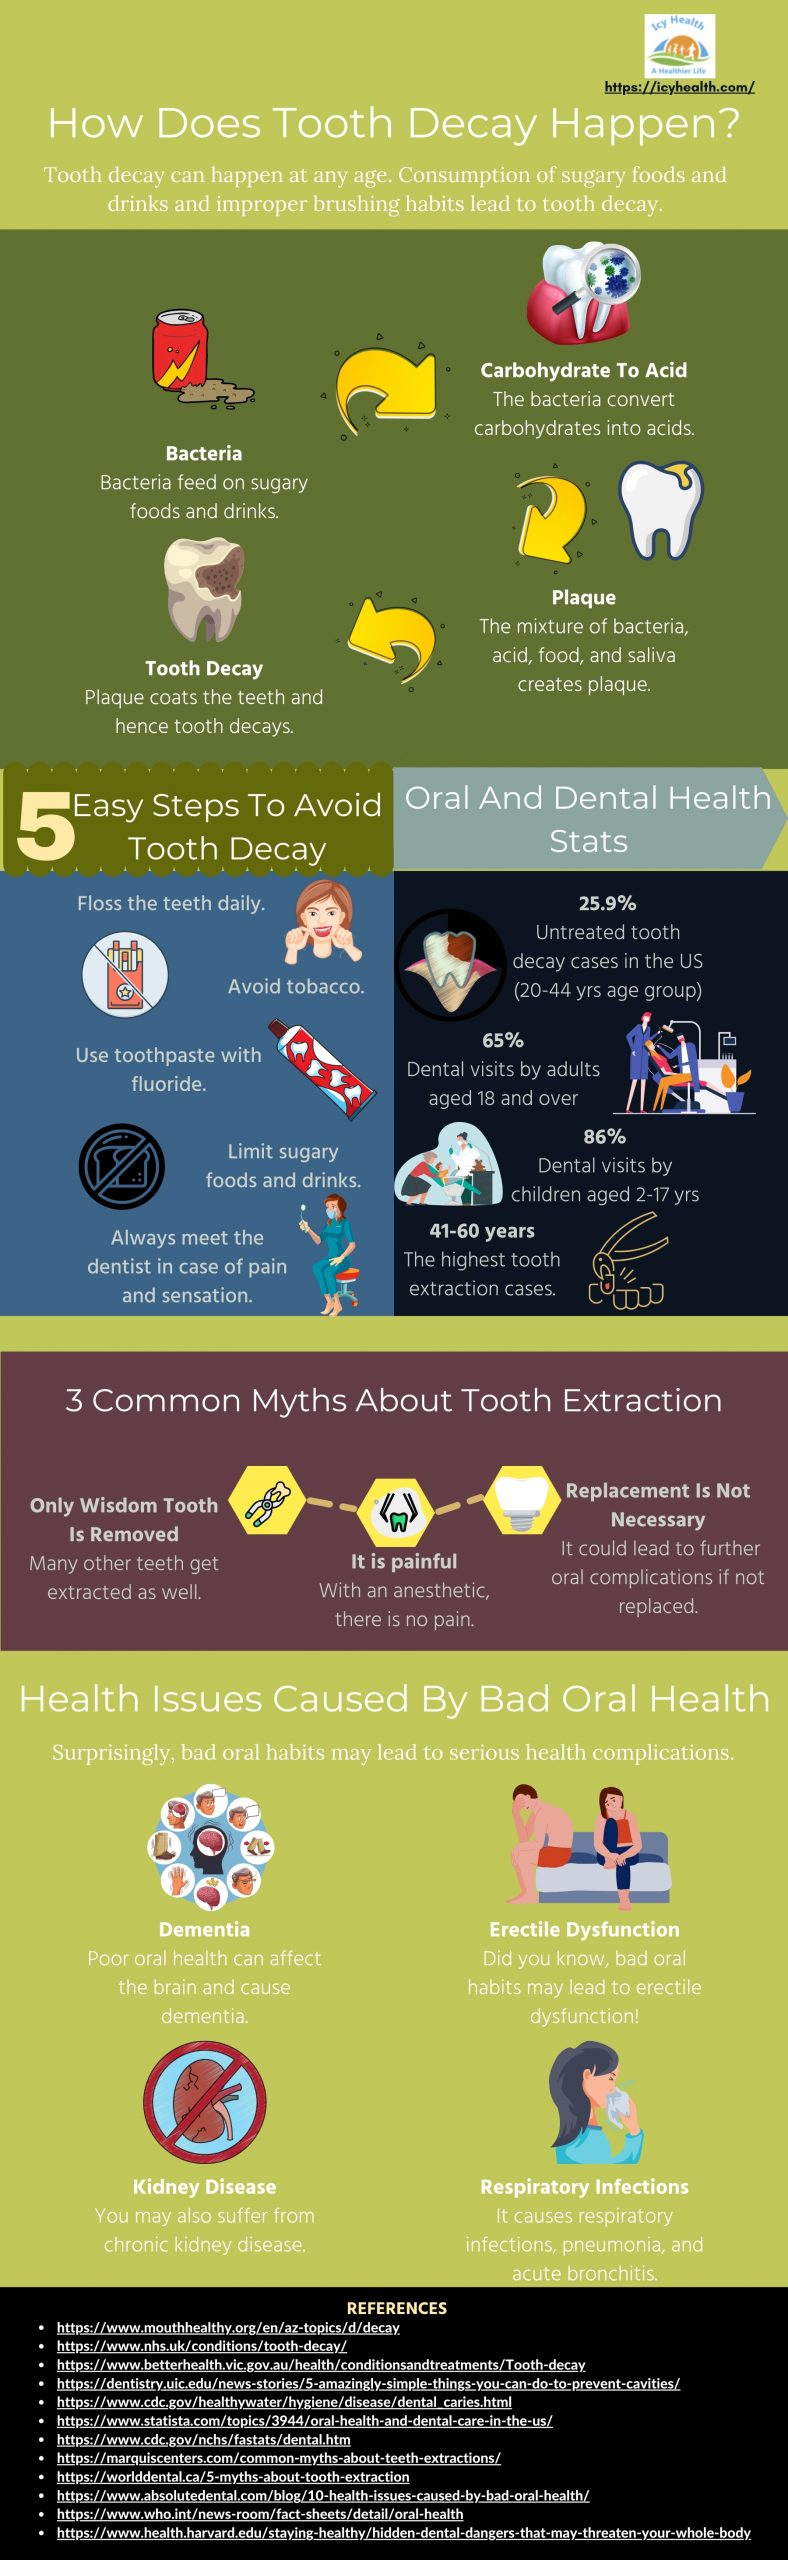 How Does Tooth Decay Happen